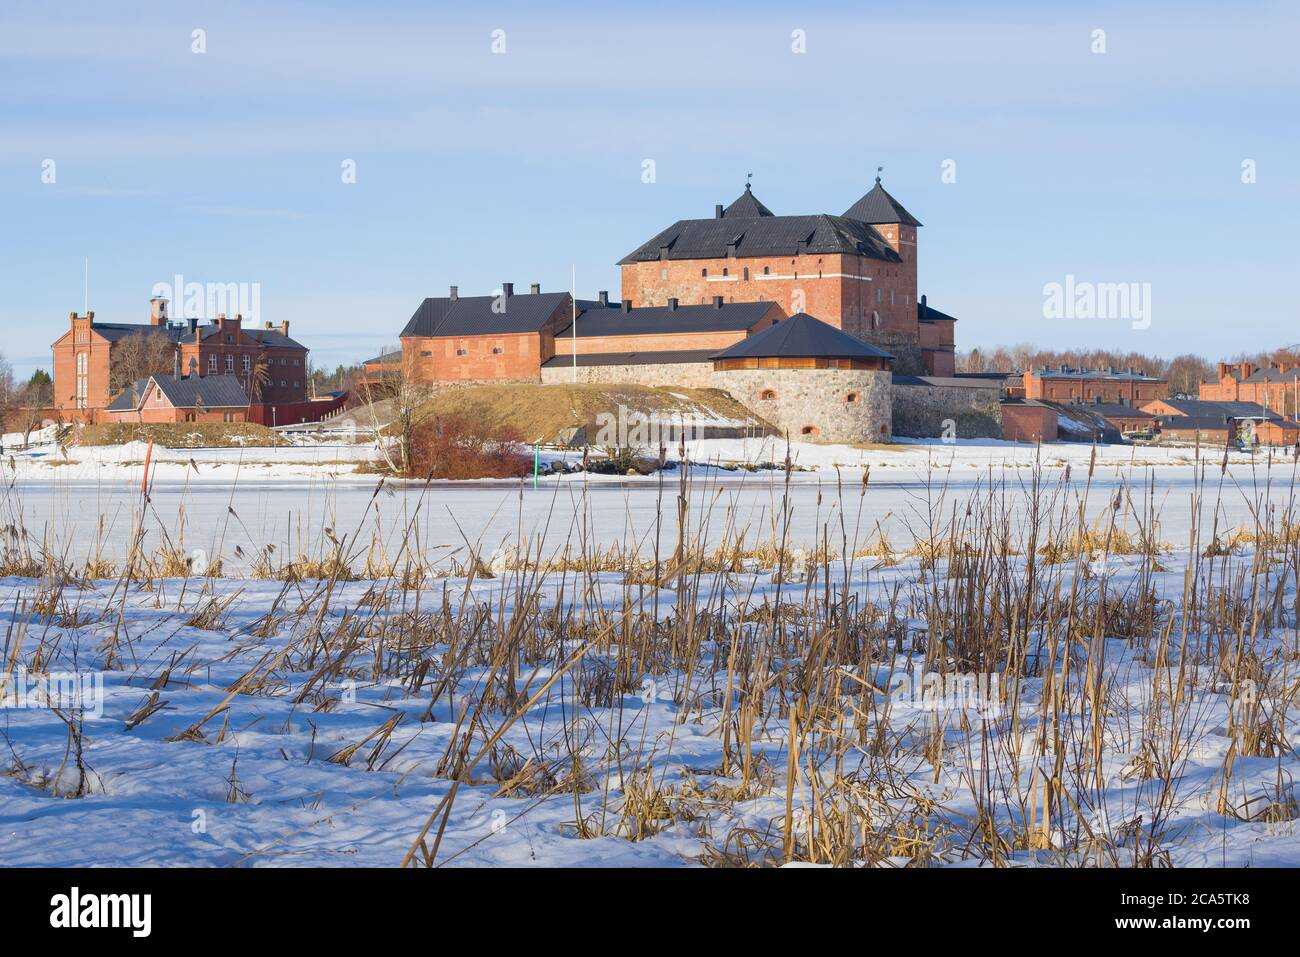 View of the ancient fortress of the city of Hameenlinna from the shore of Vanajavesi lake on a sunny March day. Finland Stock Photo